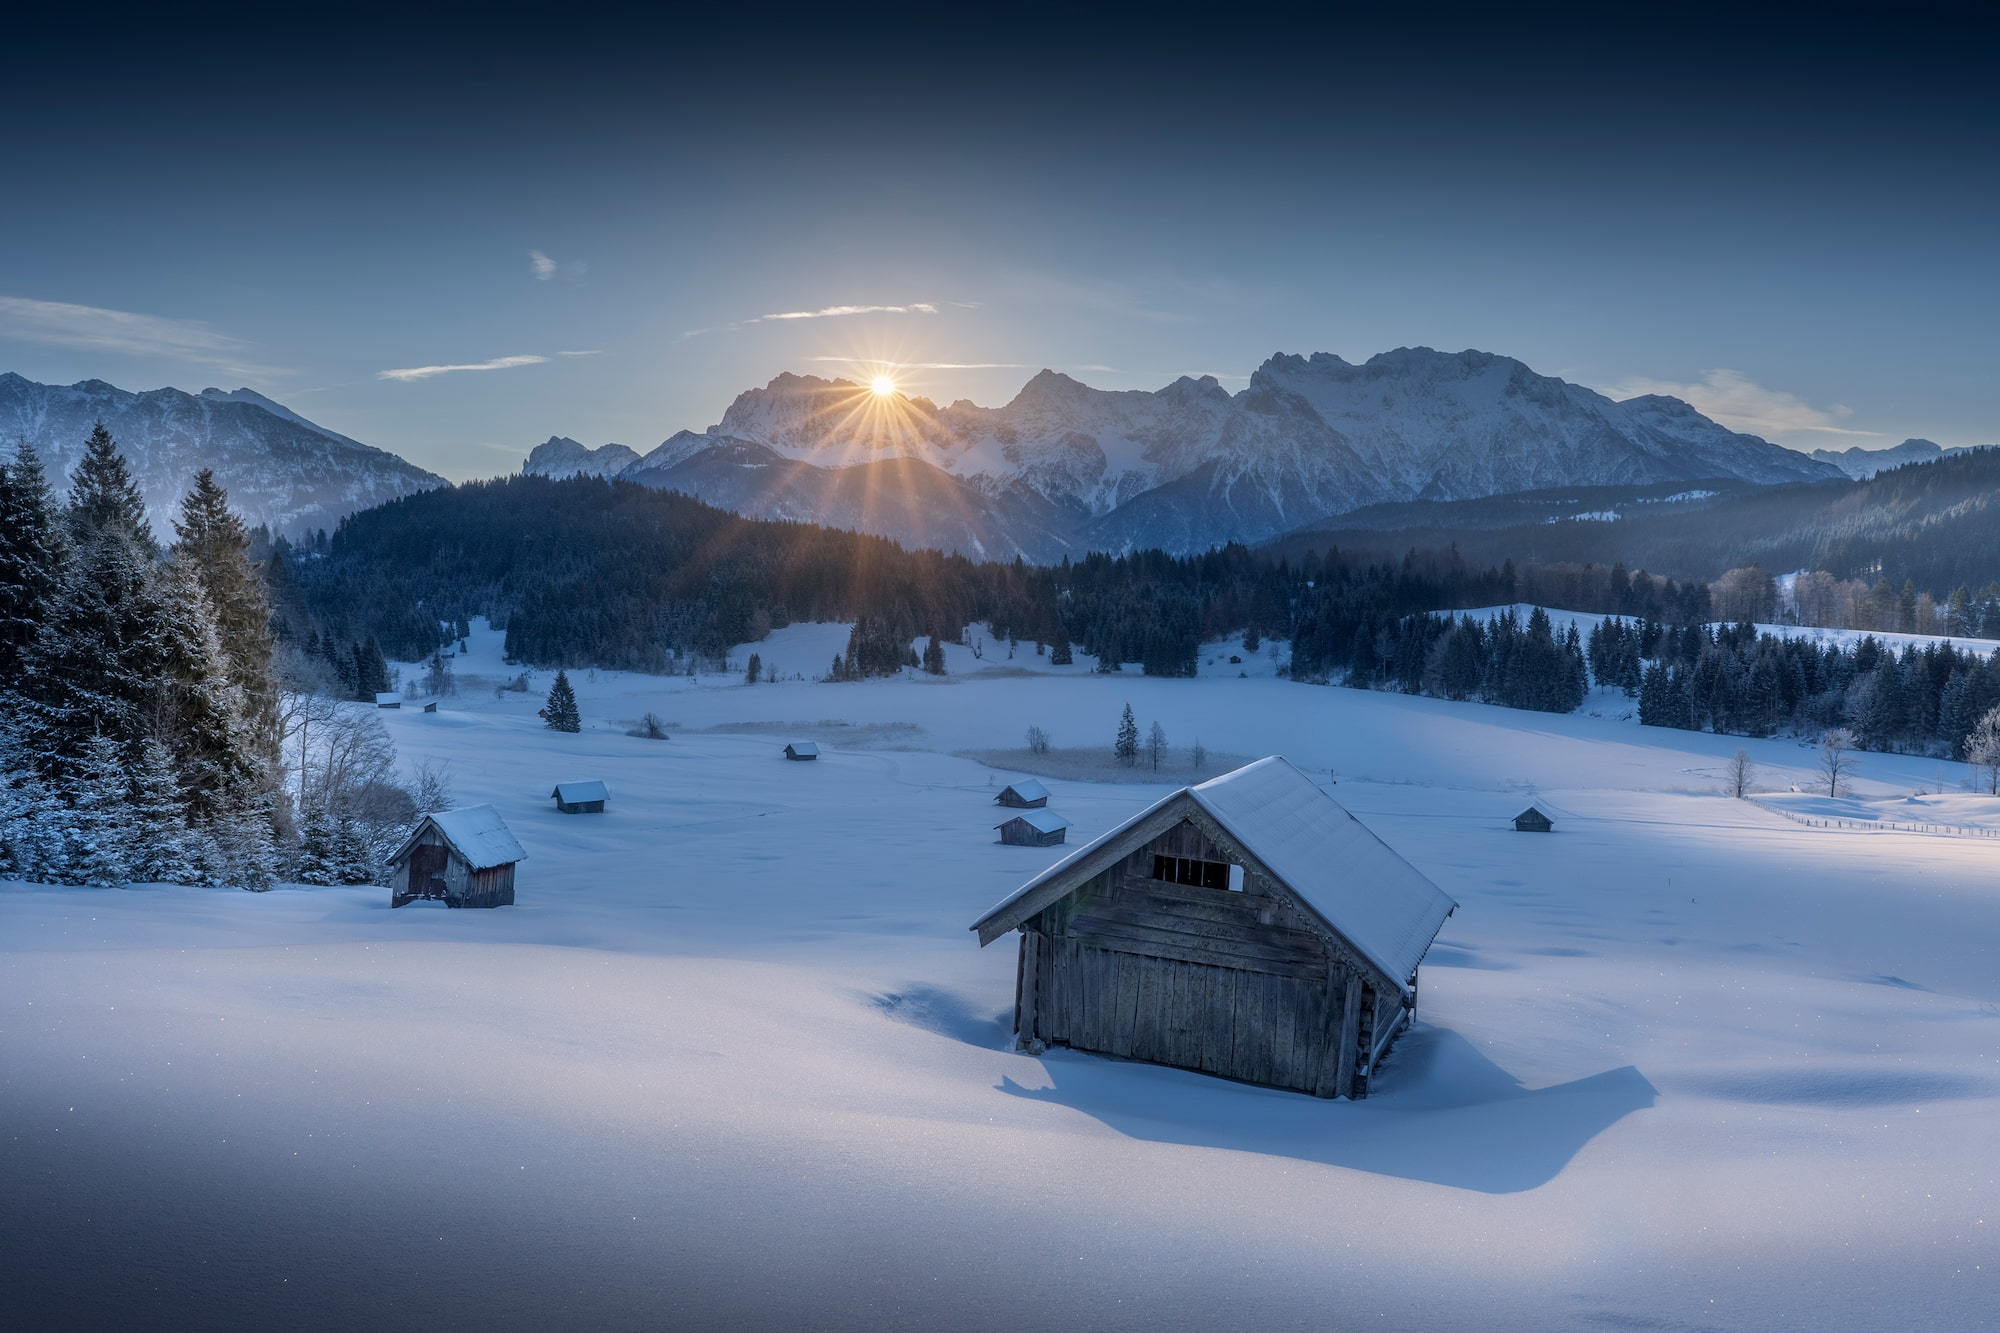 ilhan eroglu sony A6600 dawn breaks over a snowy scene with a wooden hut illuminated in the foreground